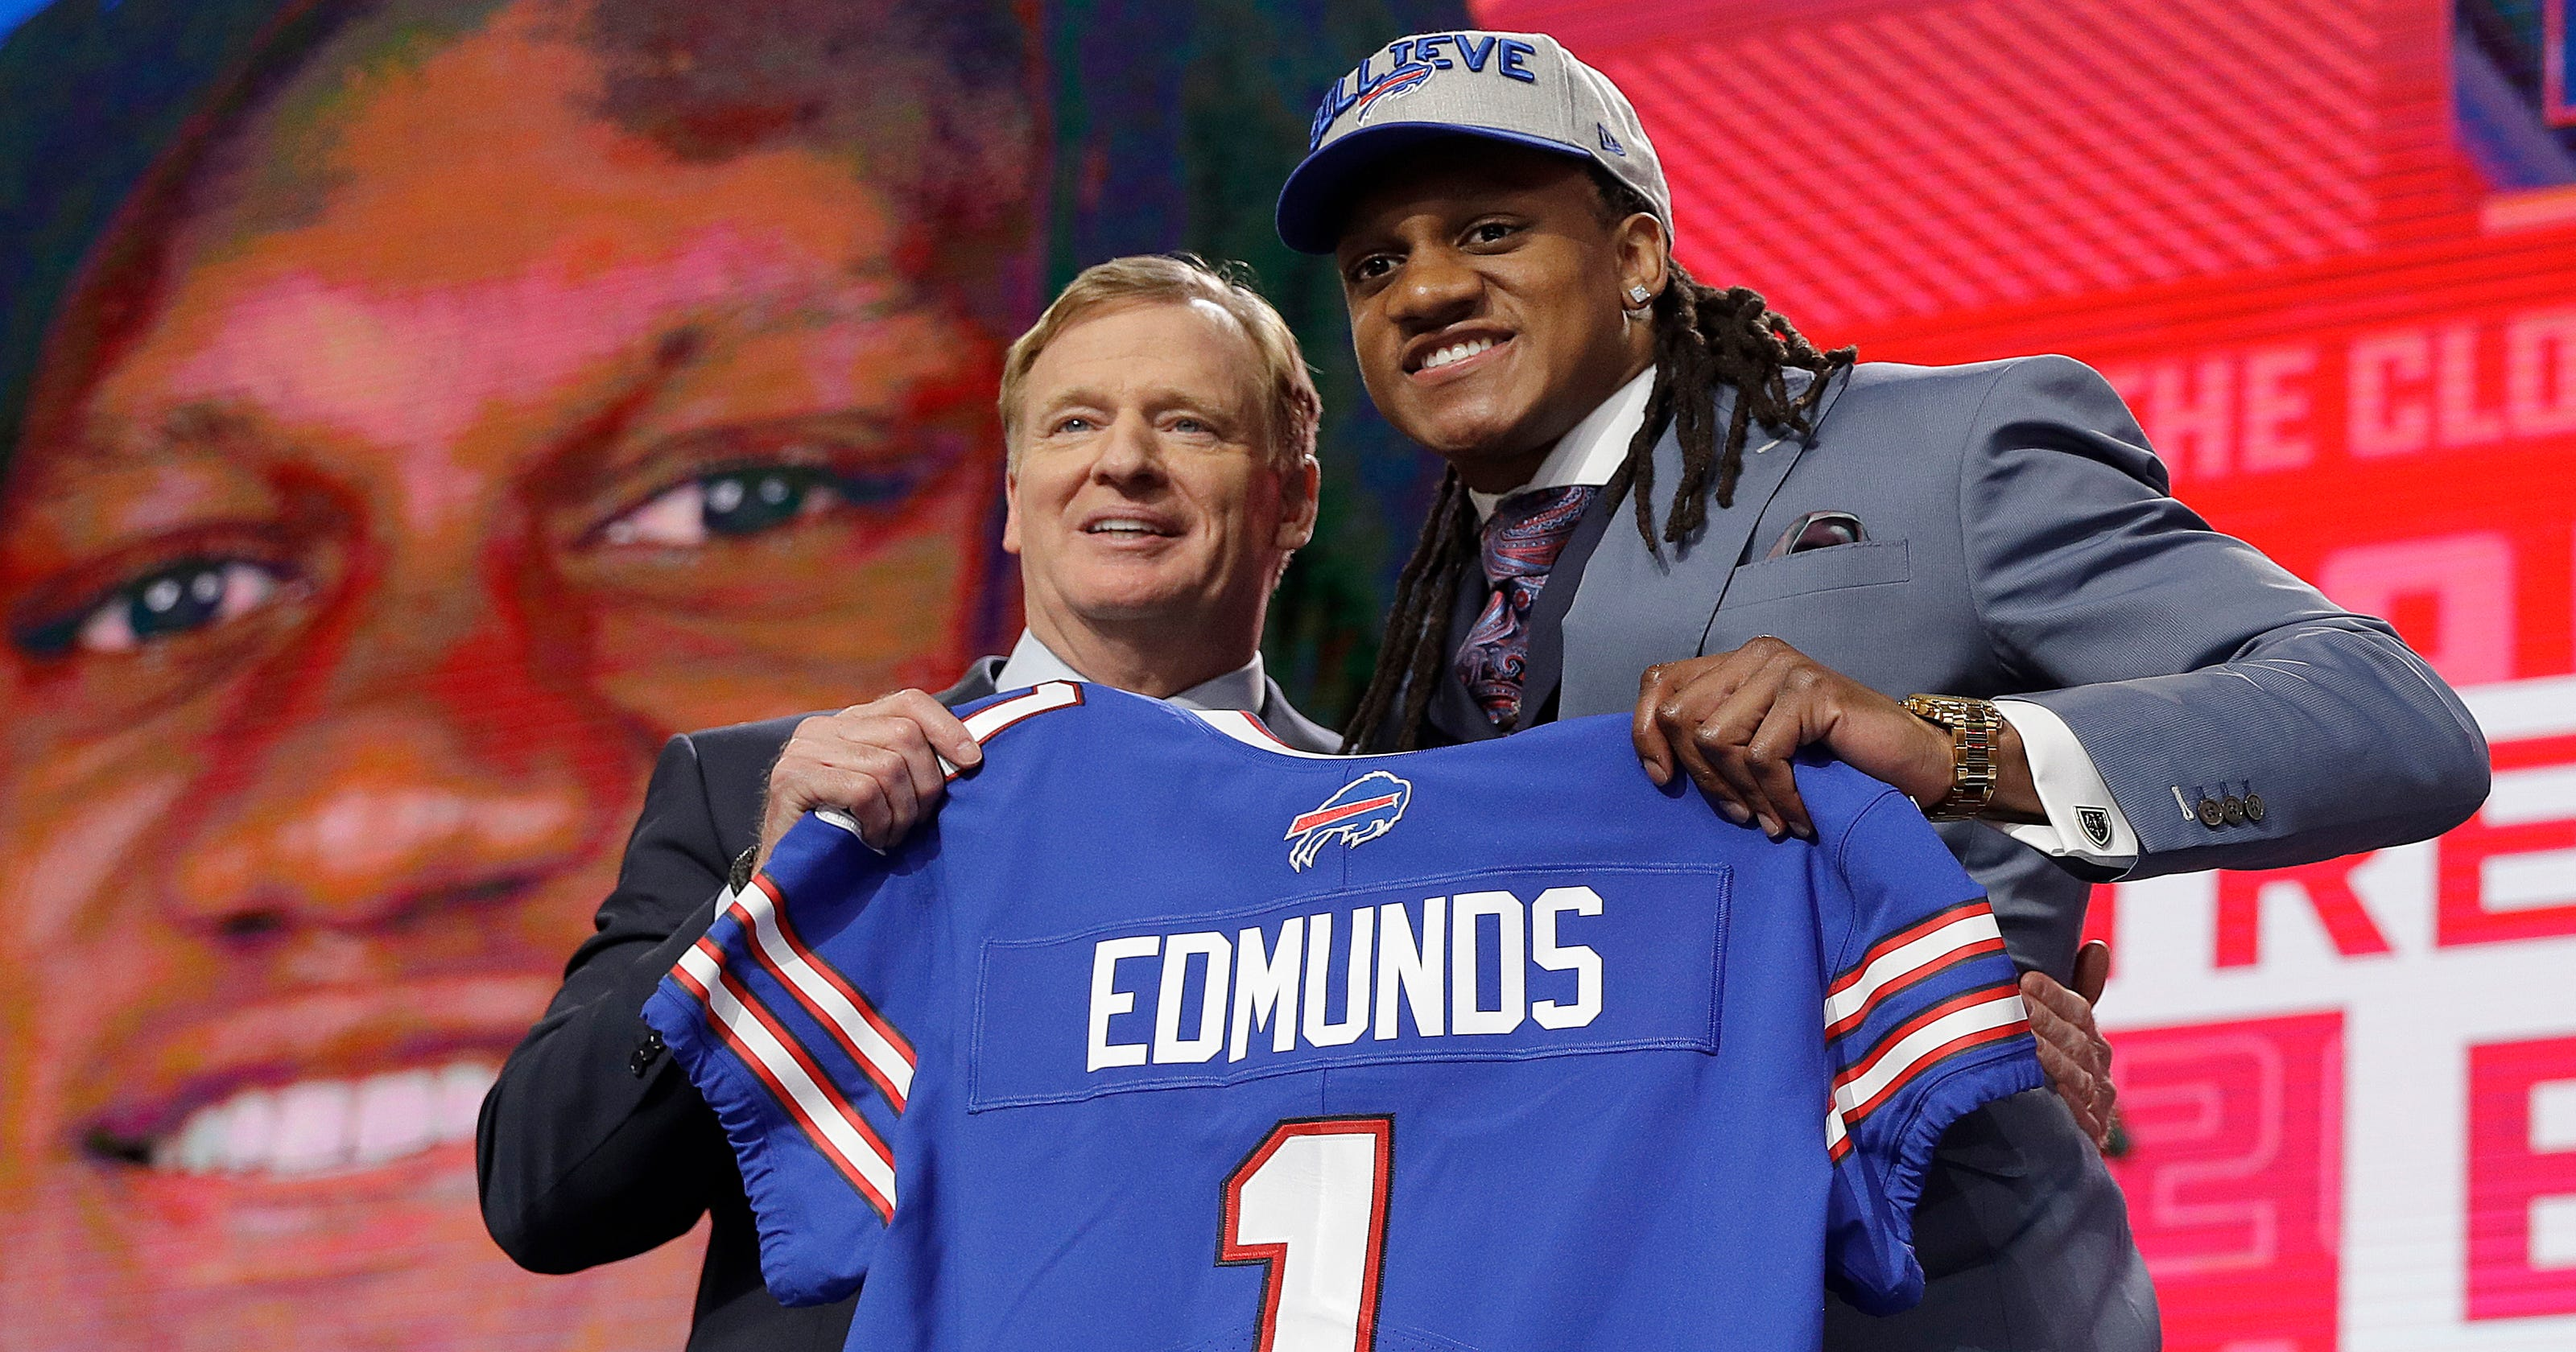 045c591eeea Bills make another huge trade to pick Tremaine Edmunds No. 16 overall in NFL  Draft